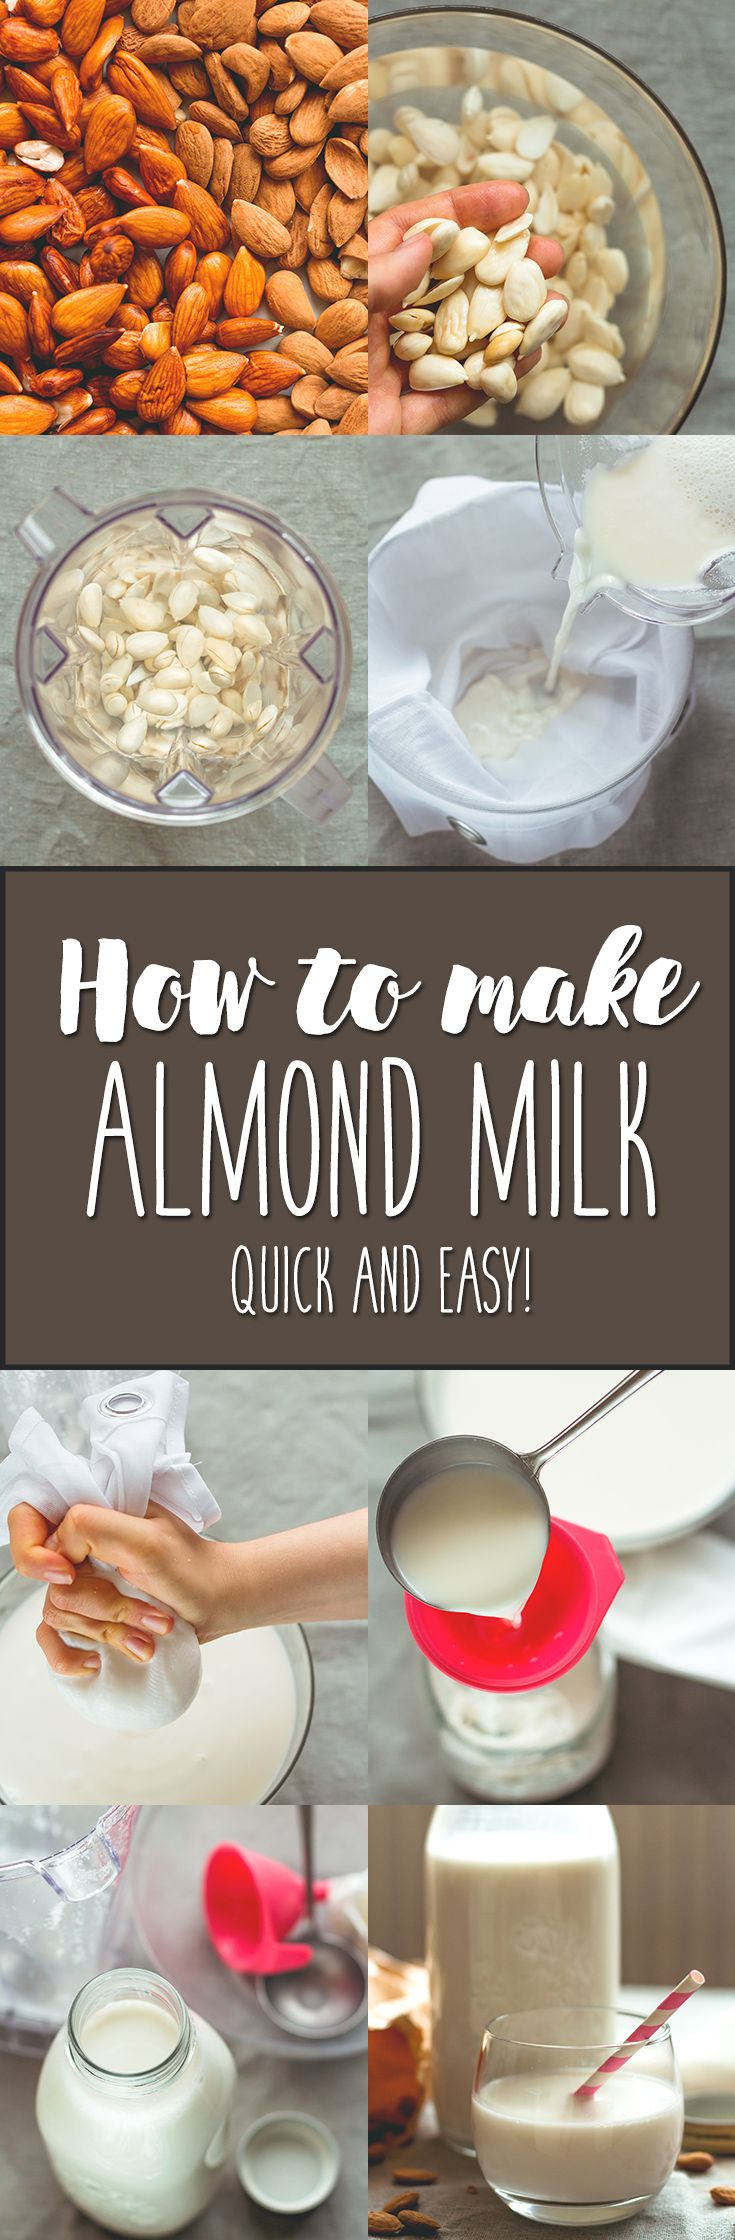 How to Make Almond Milk? Try this quick & EASY recipe, you'll love it! So delicious! | thehealthfulideas.com